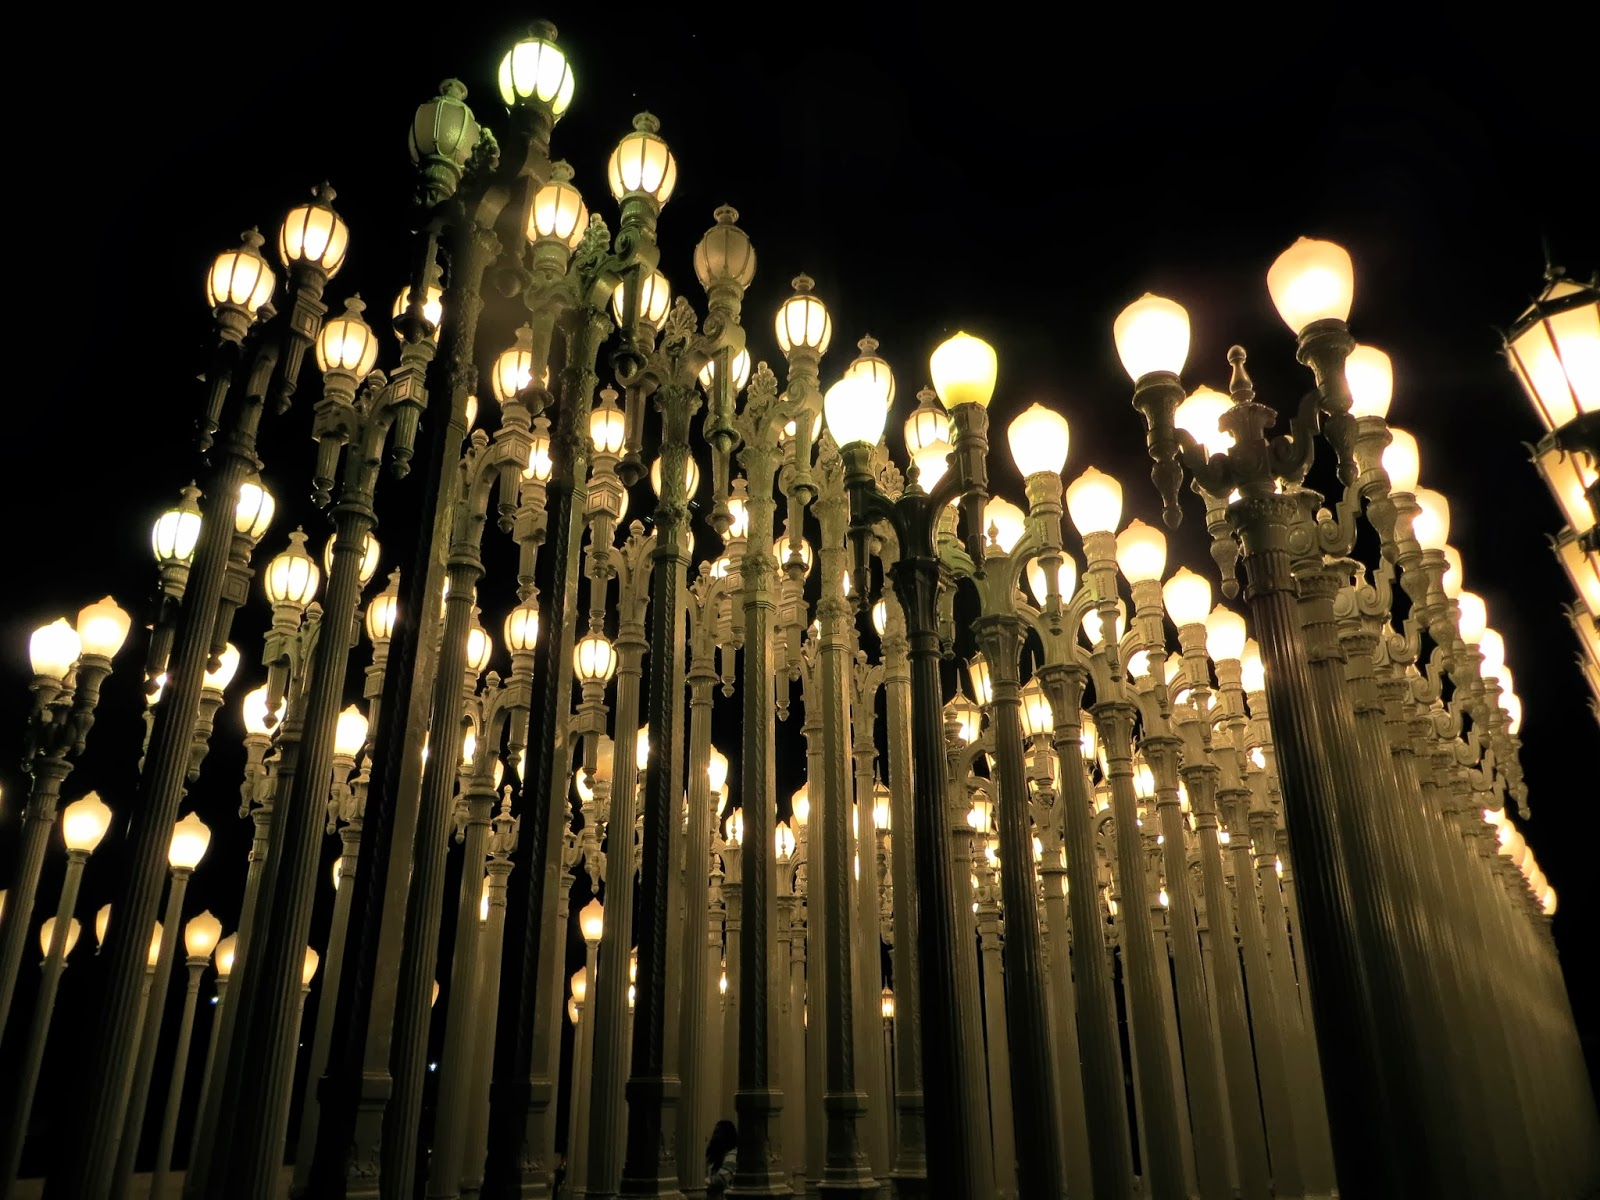 Mirjam kristian travel journal a day in california six flags worlds most famous lamp posts that are located next to la country museum of art a sculpture called urban light by chris burden aloadofball Gallery